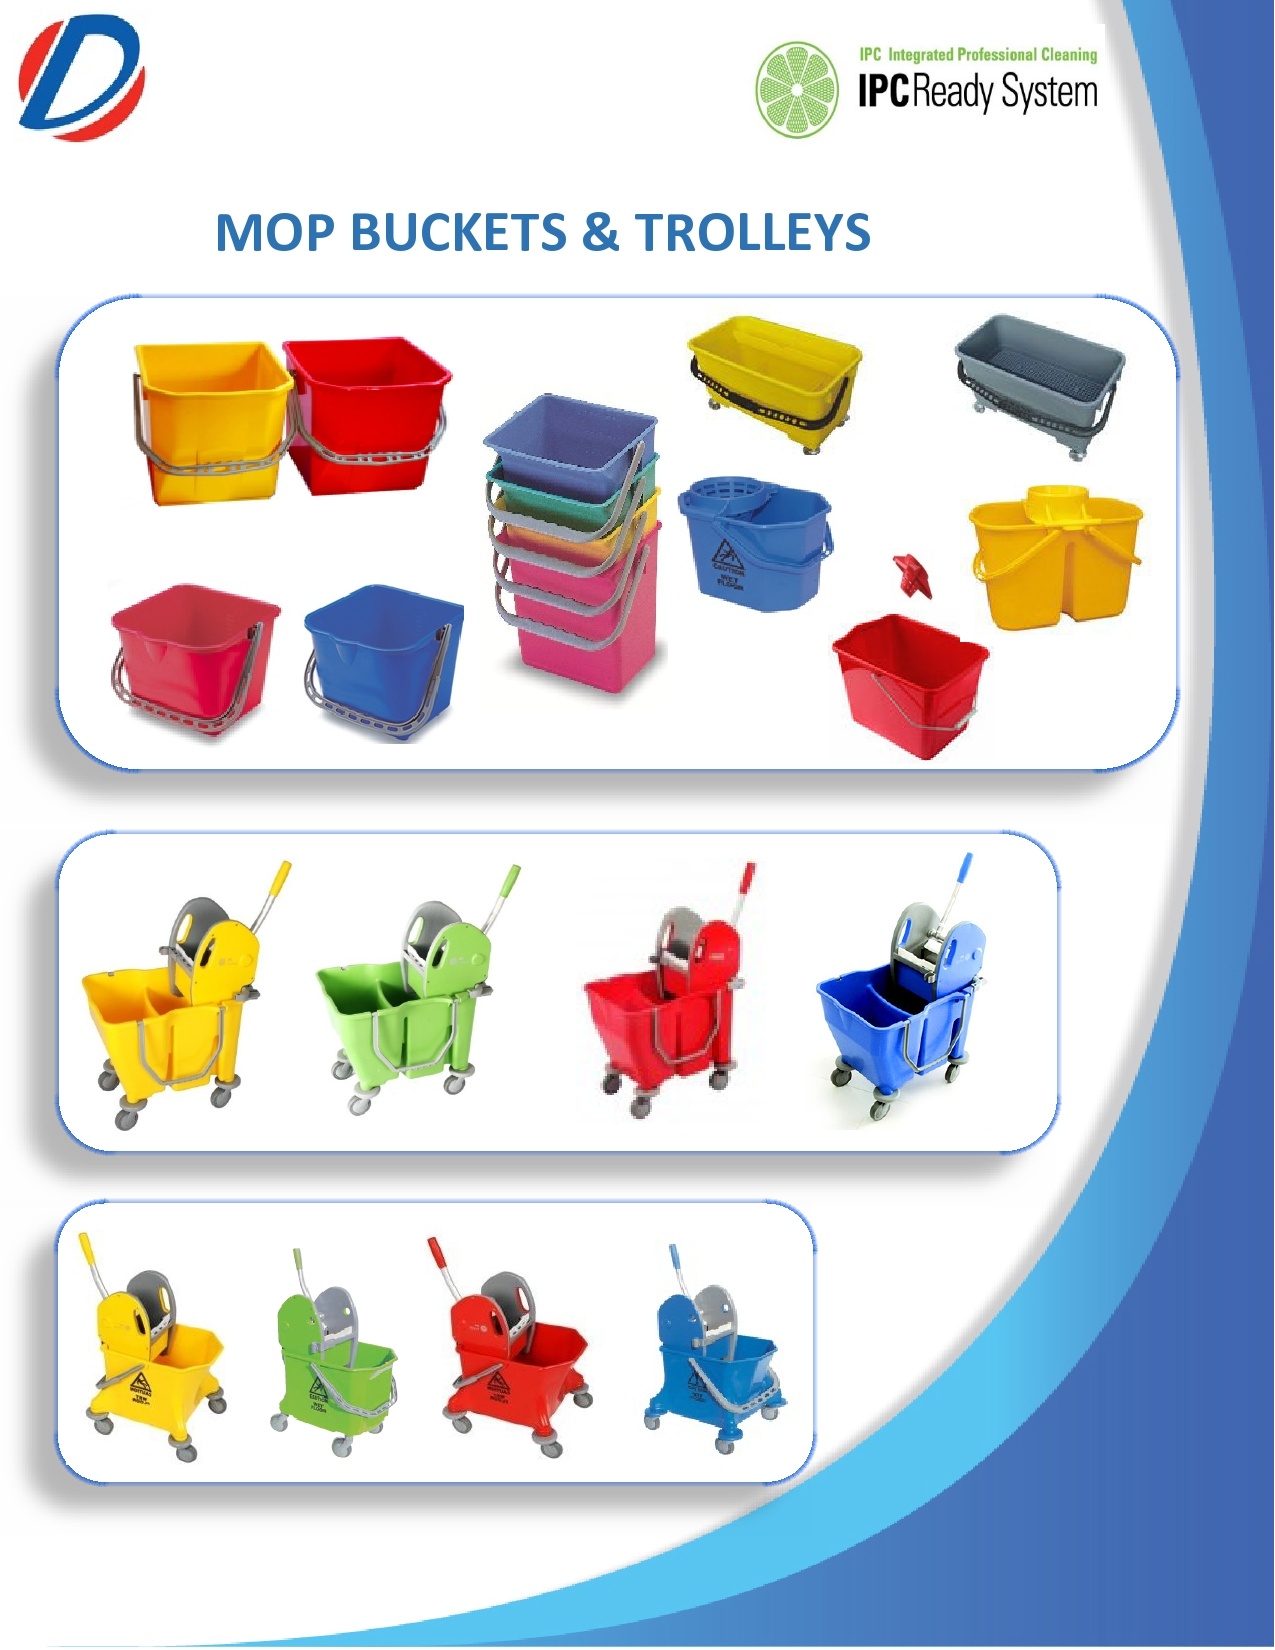 Mop Buckets And Mop Wringers